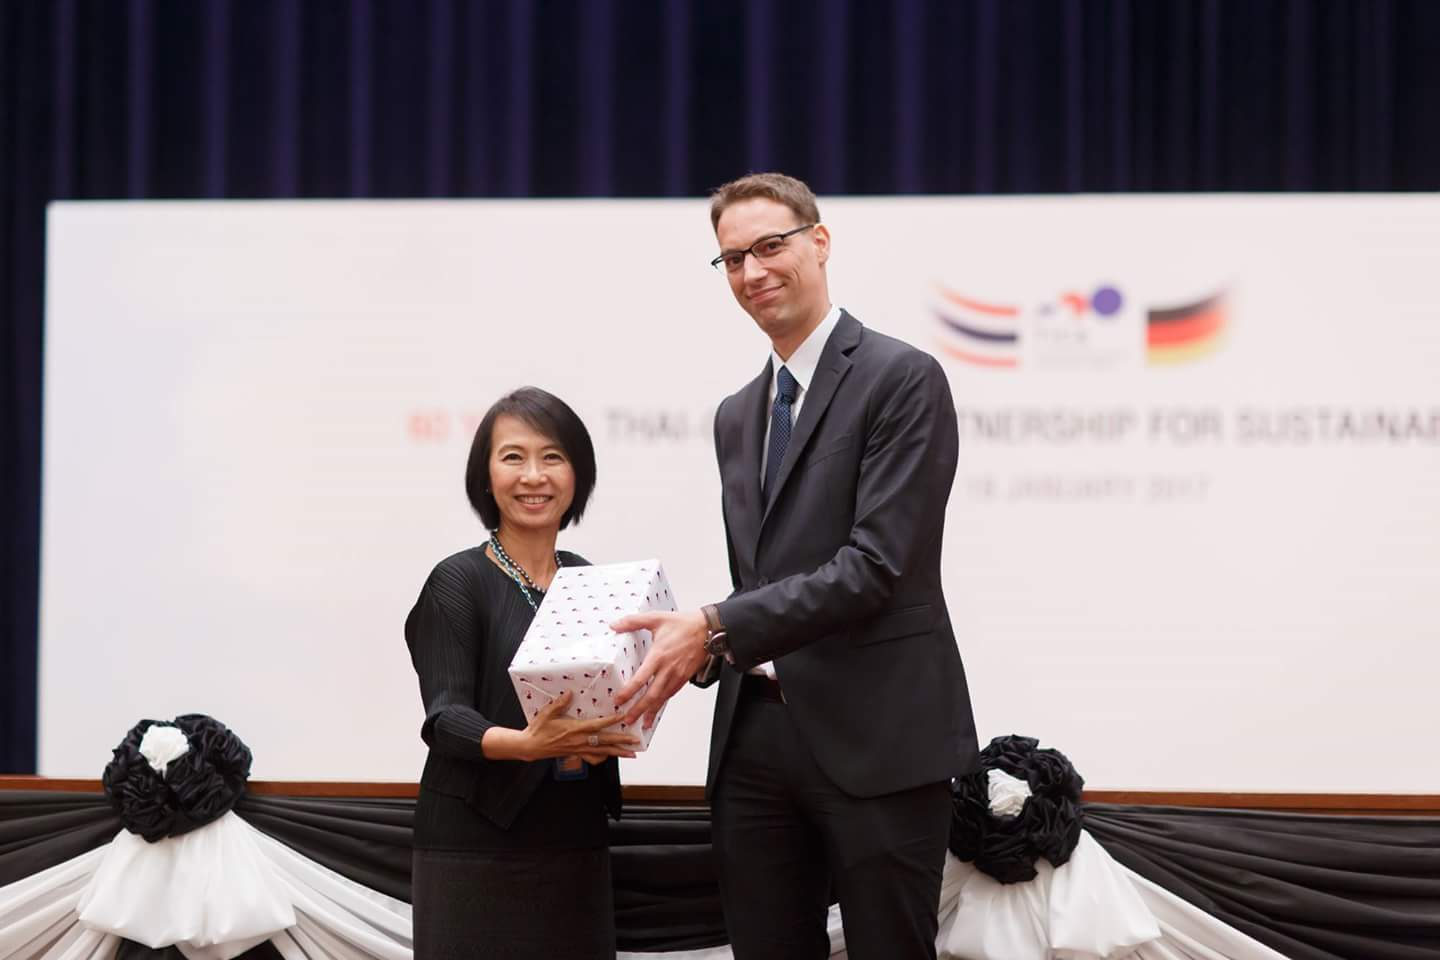 Mrs. Suphatra  Srimaitreephithak, Director - General of Thailand International Cooperation Agency (left) and Dr. Matthias Bickel, Project Director of ASEAN Sustainable Agrifood Systems